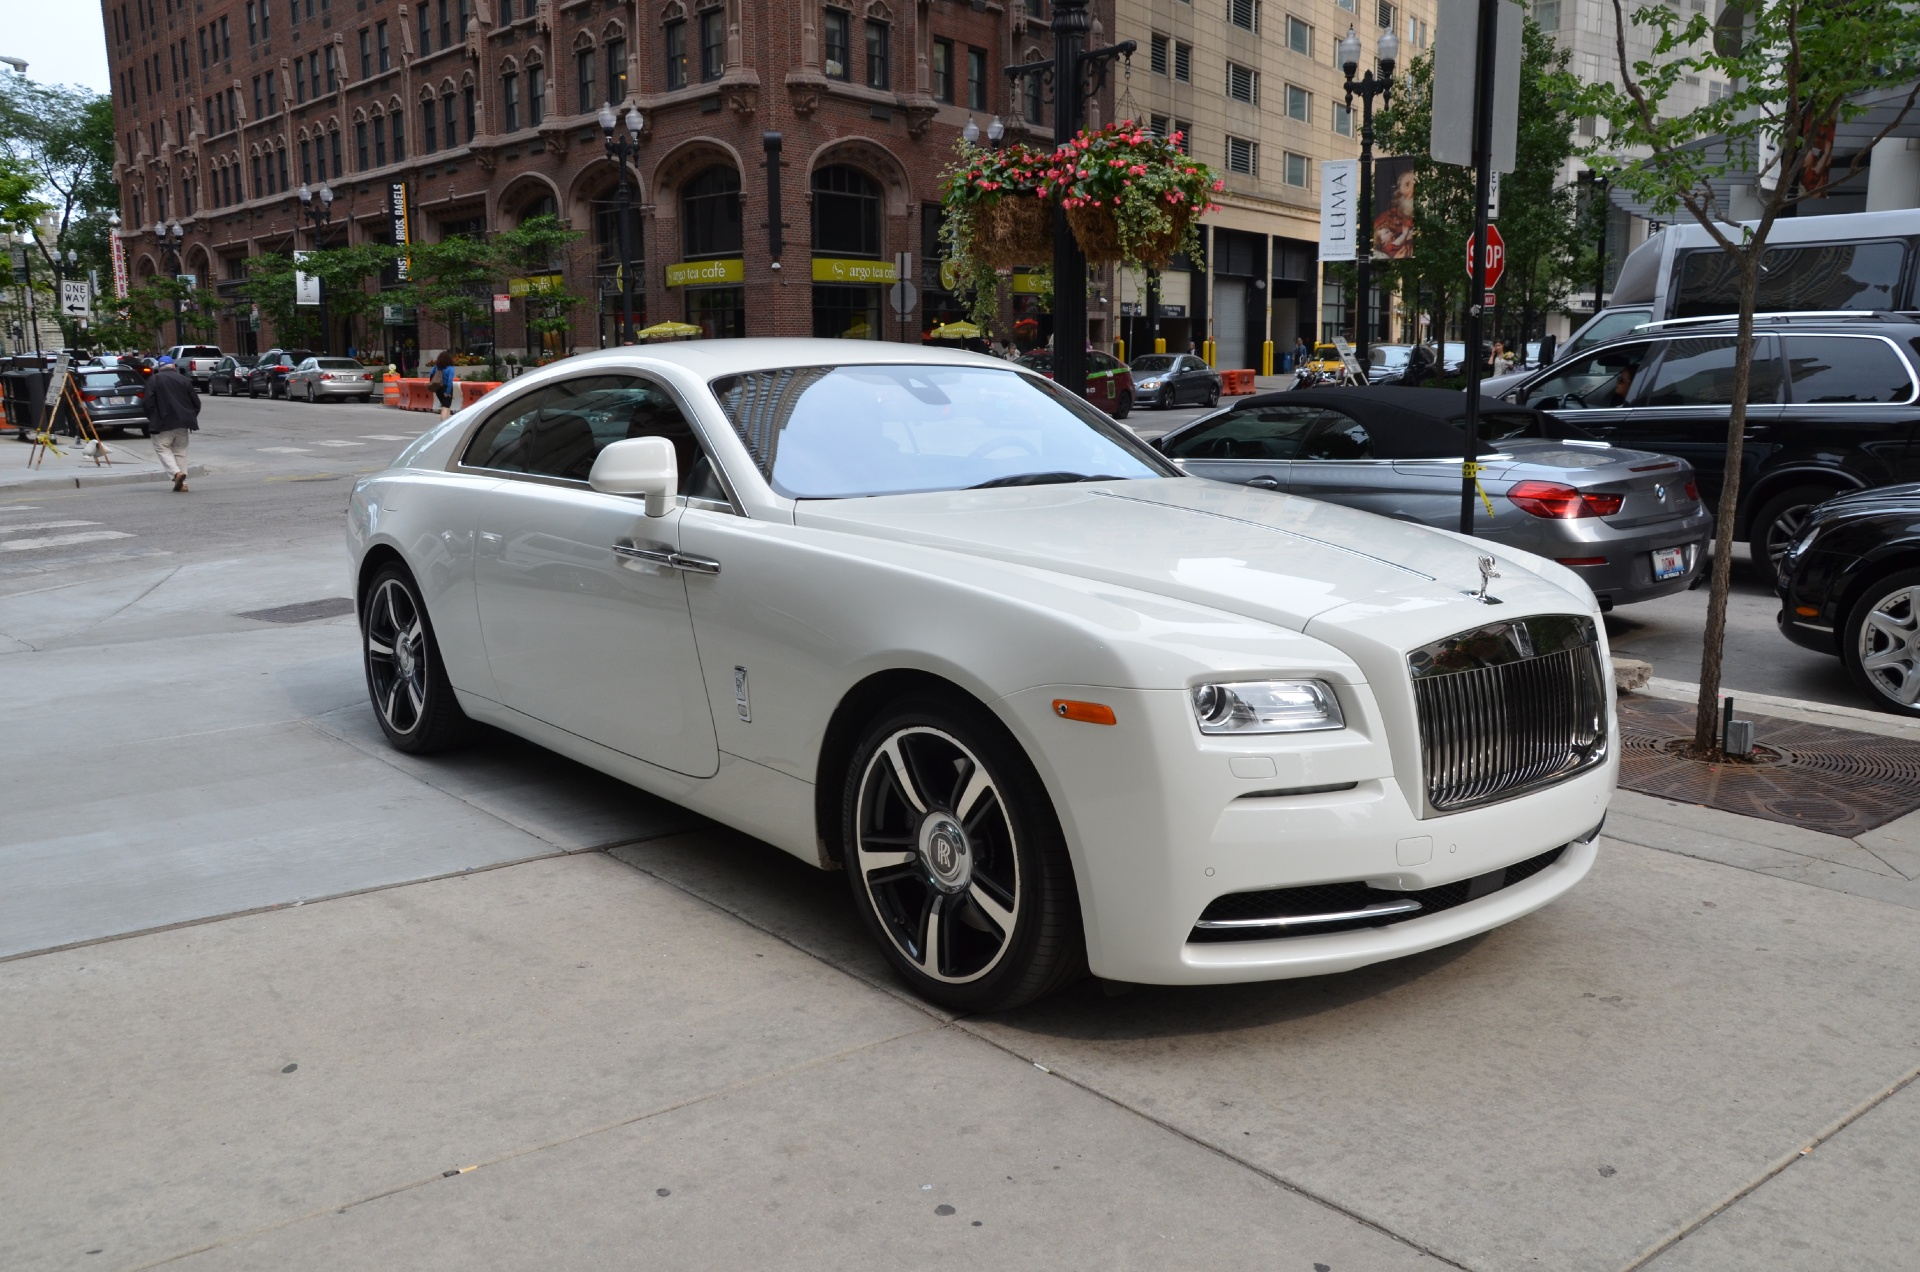 2015 rolls royce wraith stock r213a for sale near chicago il il rolls royce dealer. Black Bedroom Furniture Sets. Home Design Ideas